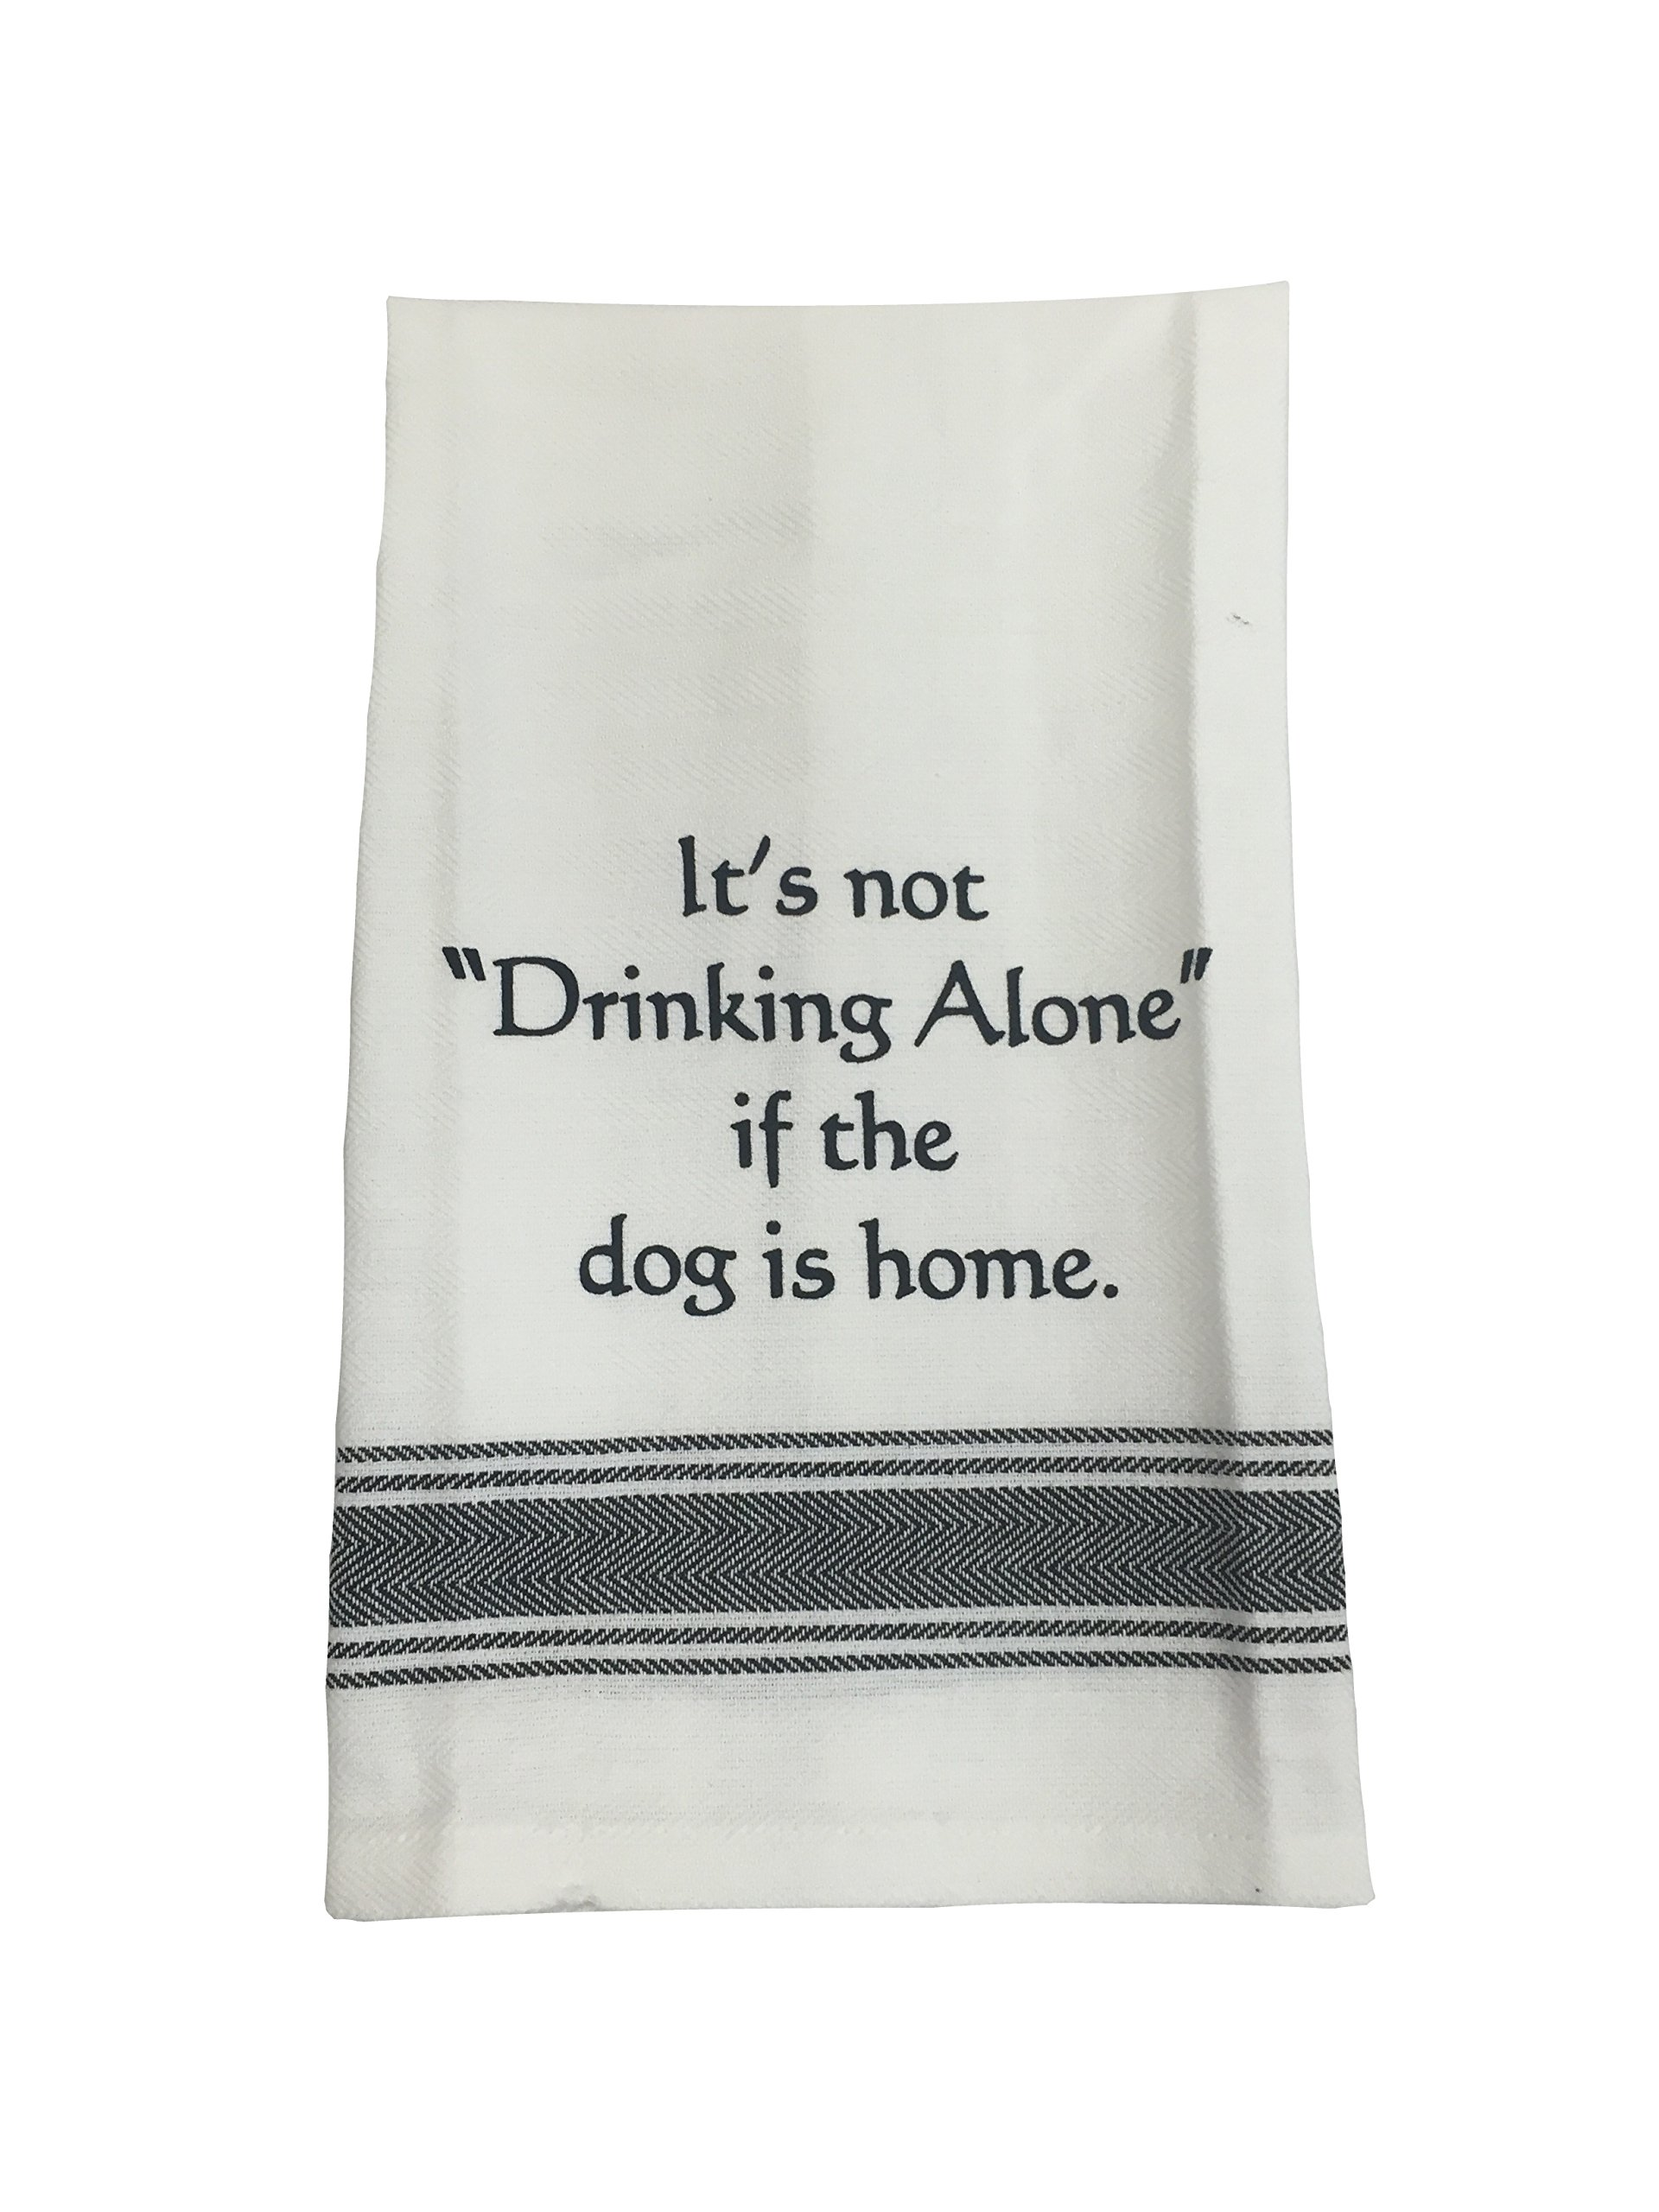 TOWEL: It's Not Drinking Alone If The Dog Is Home.